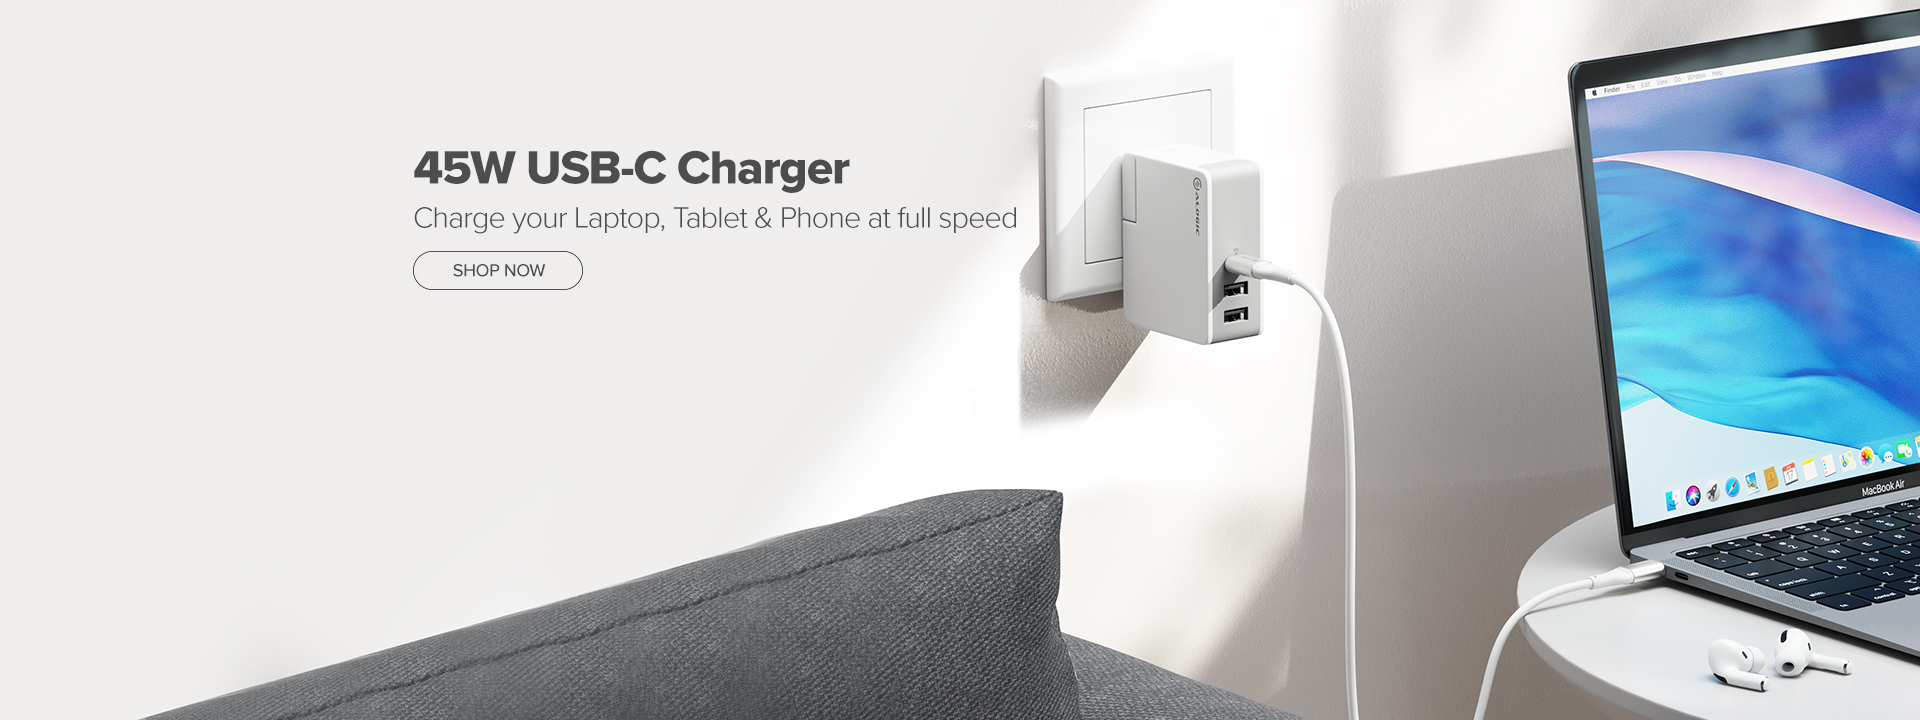 45W Wall charger banner